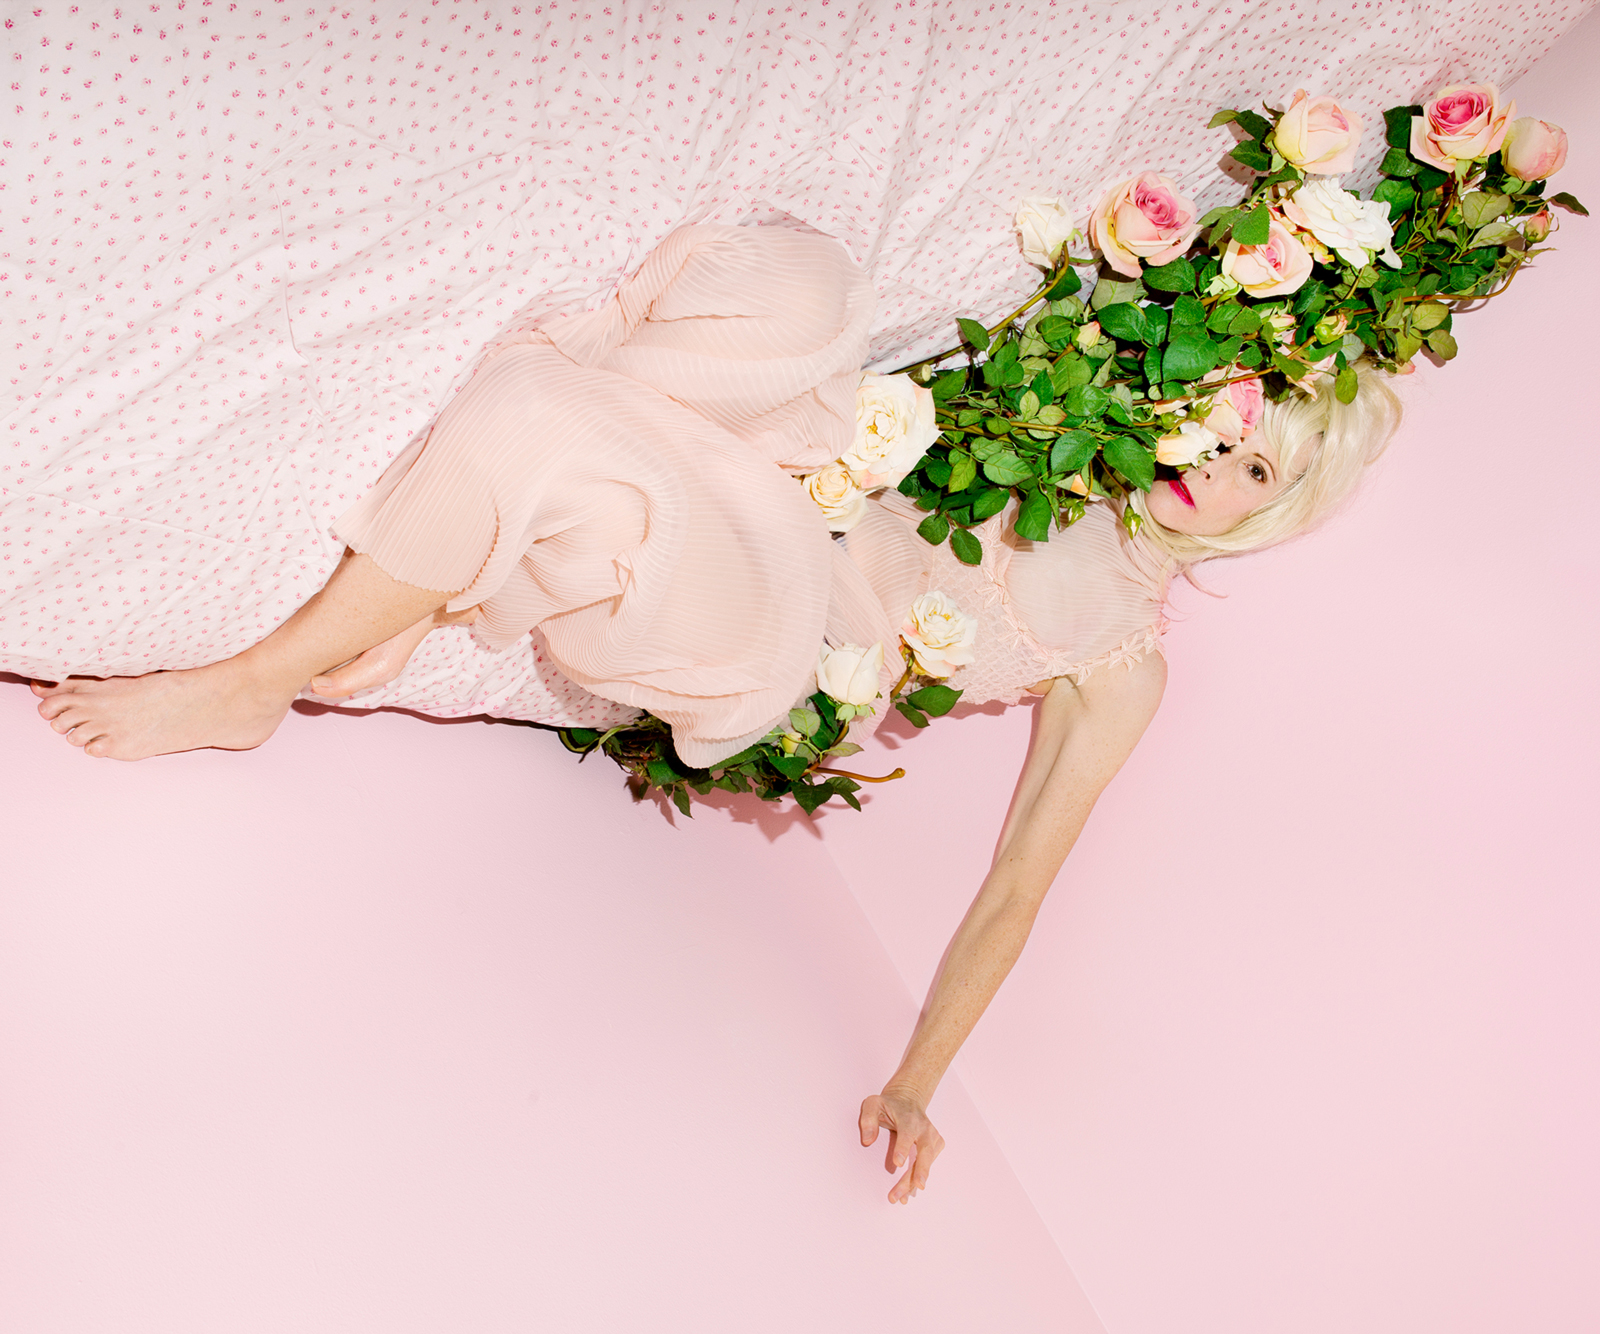 My mother in bed with roses  © Natalie Krick